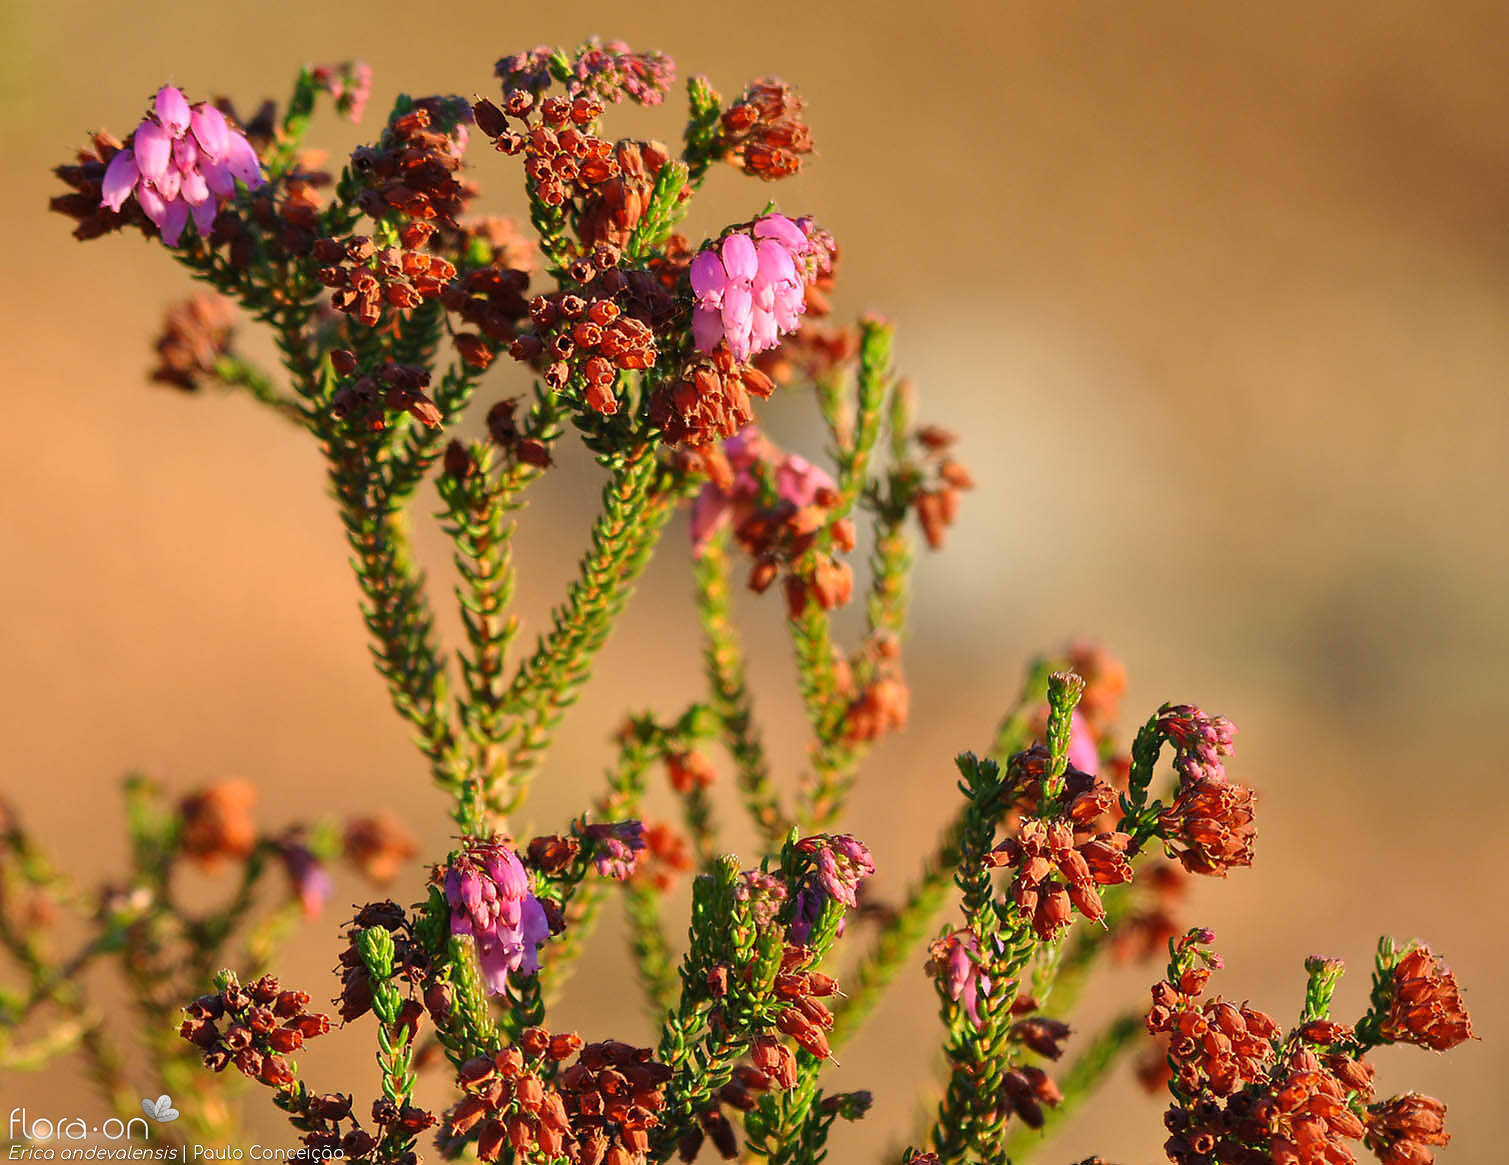 Erica andevalensis